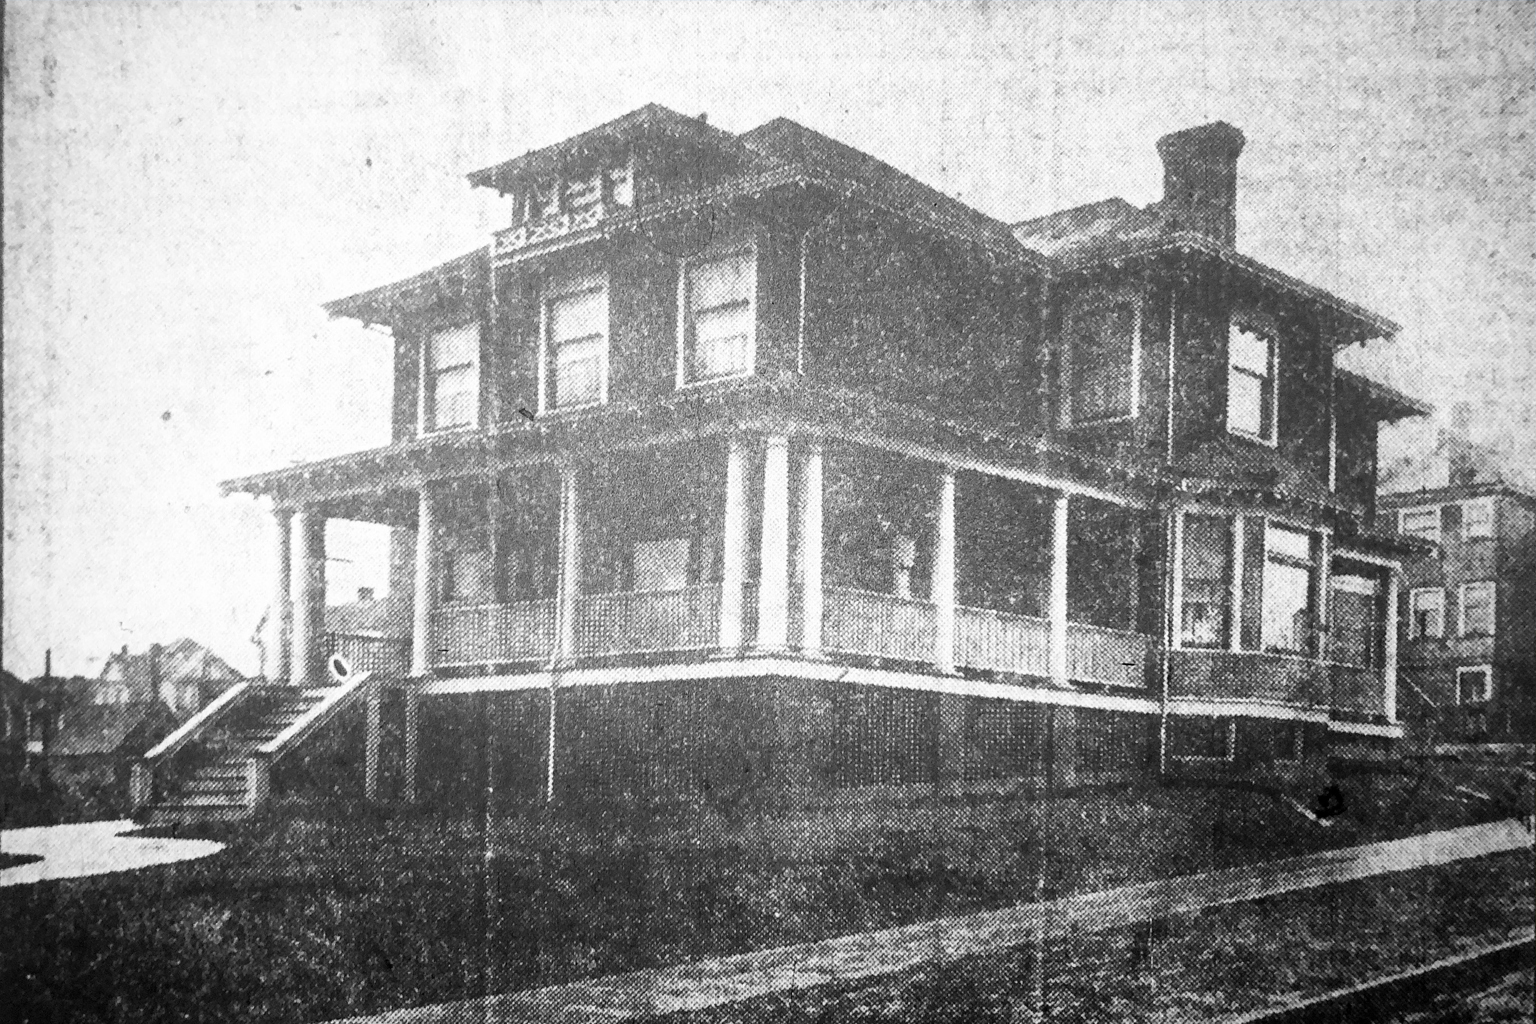 The Tozer House circa 1907